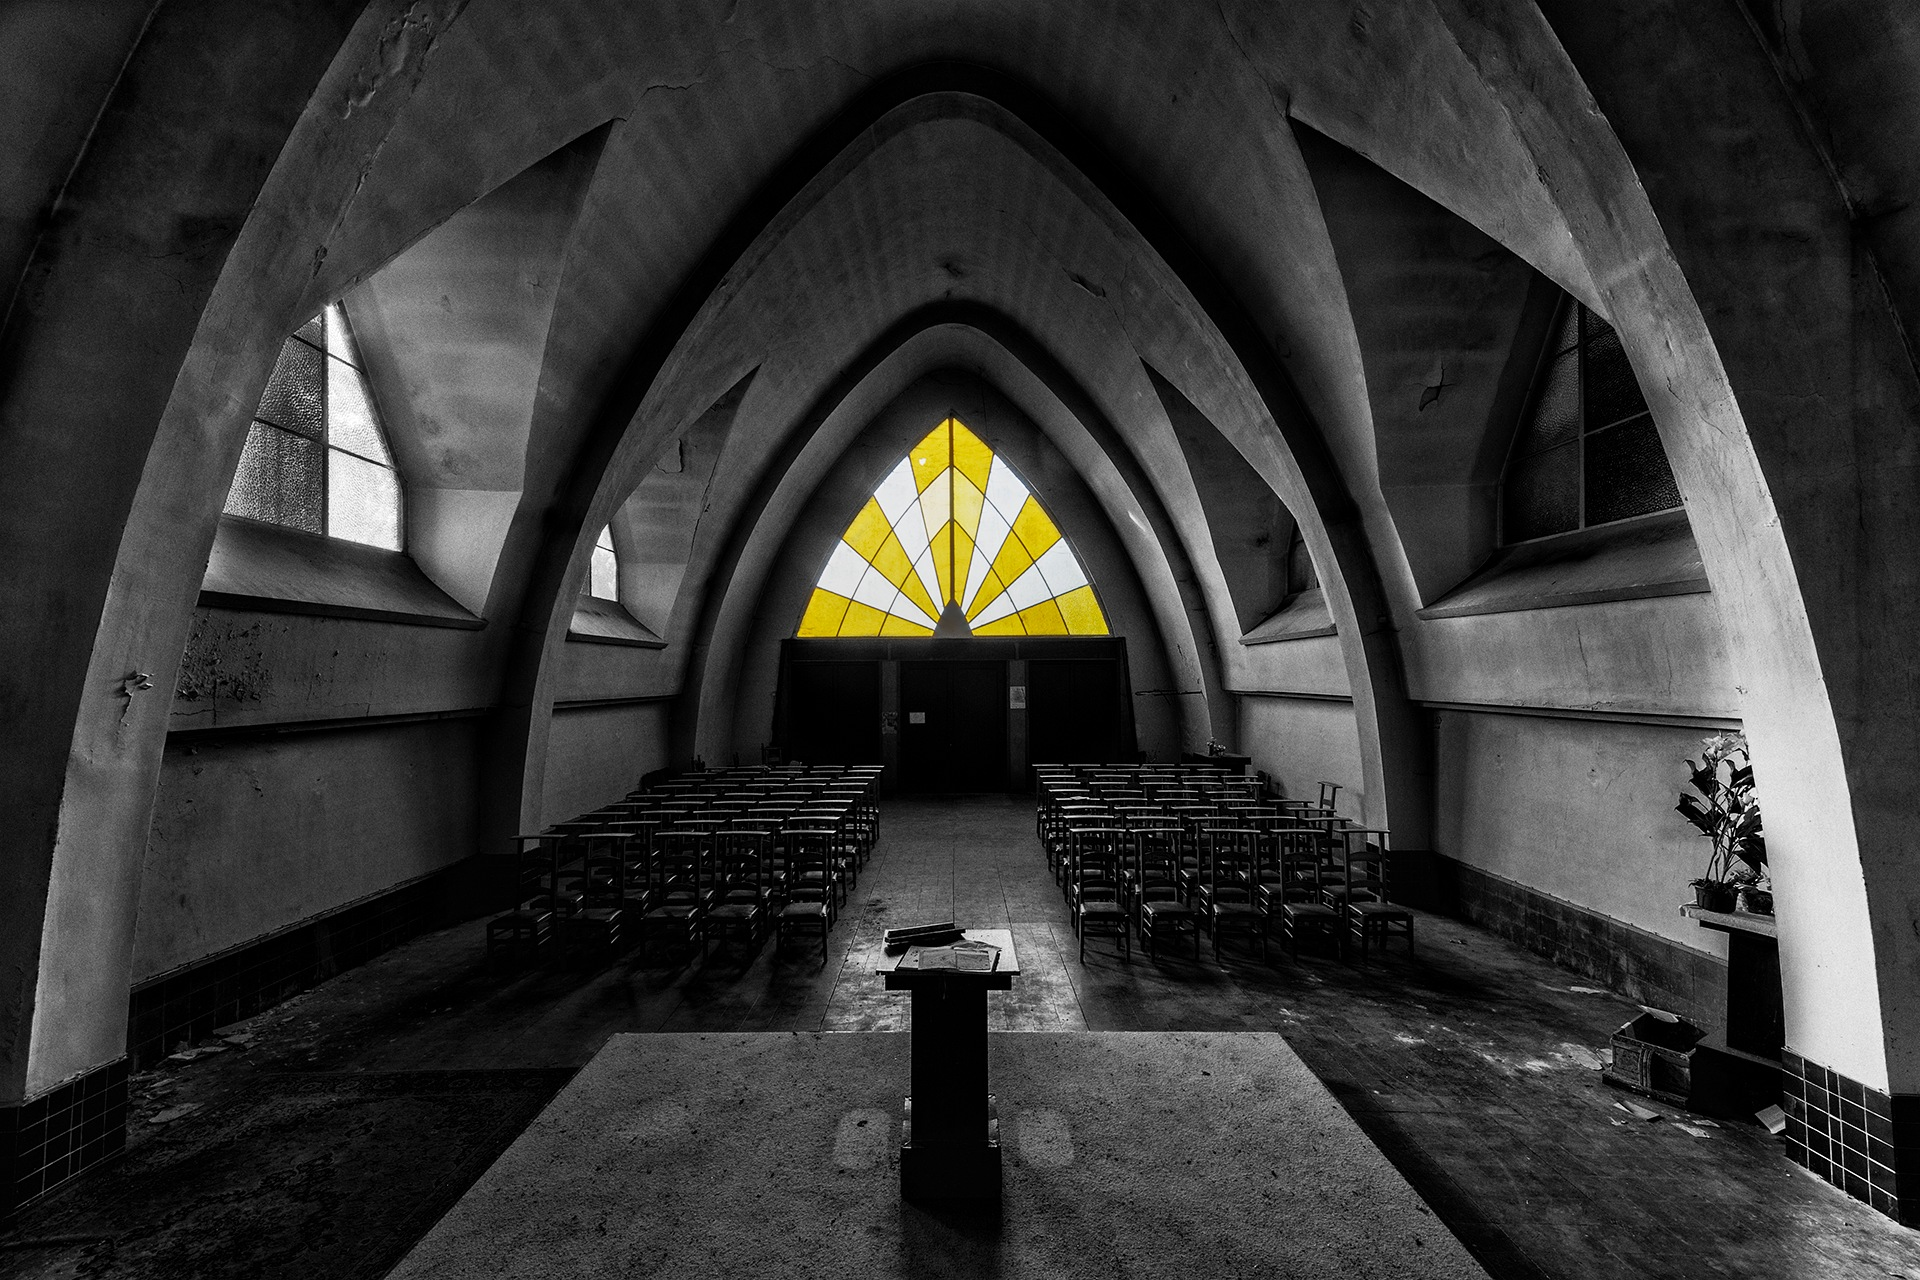 Let there be light in this dark world by Joël Arys